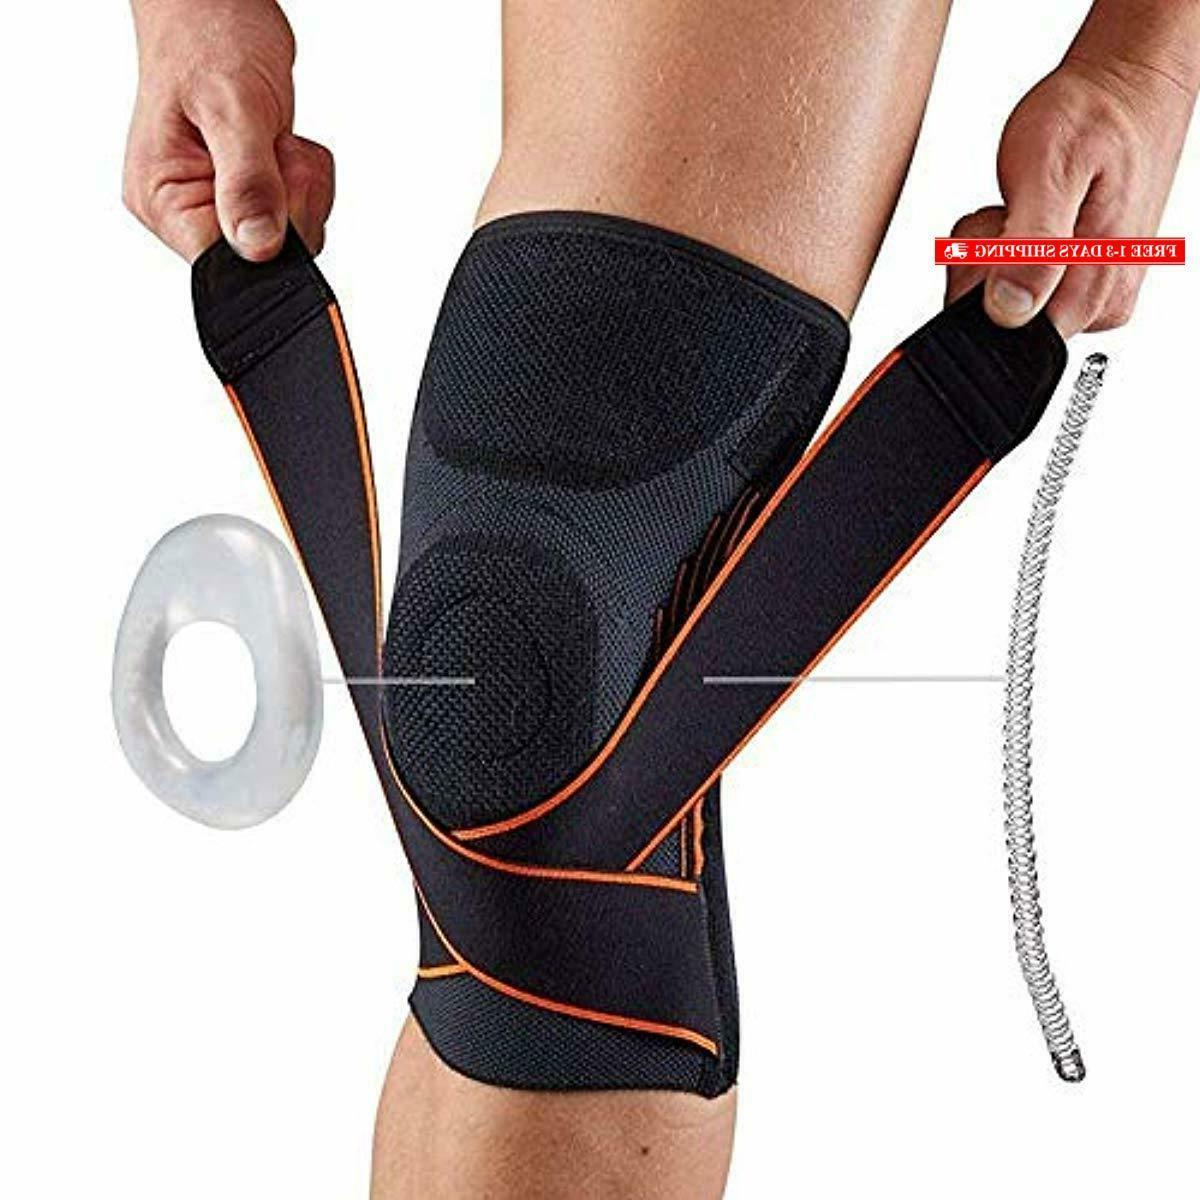 knee compression brace sleeve support with side